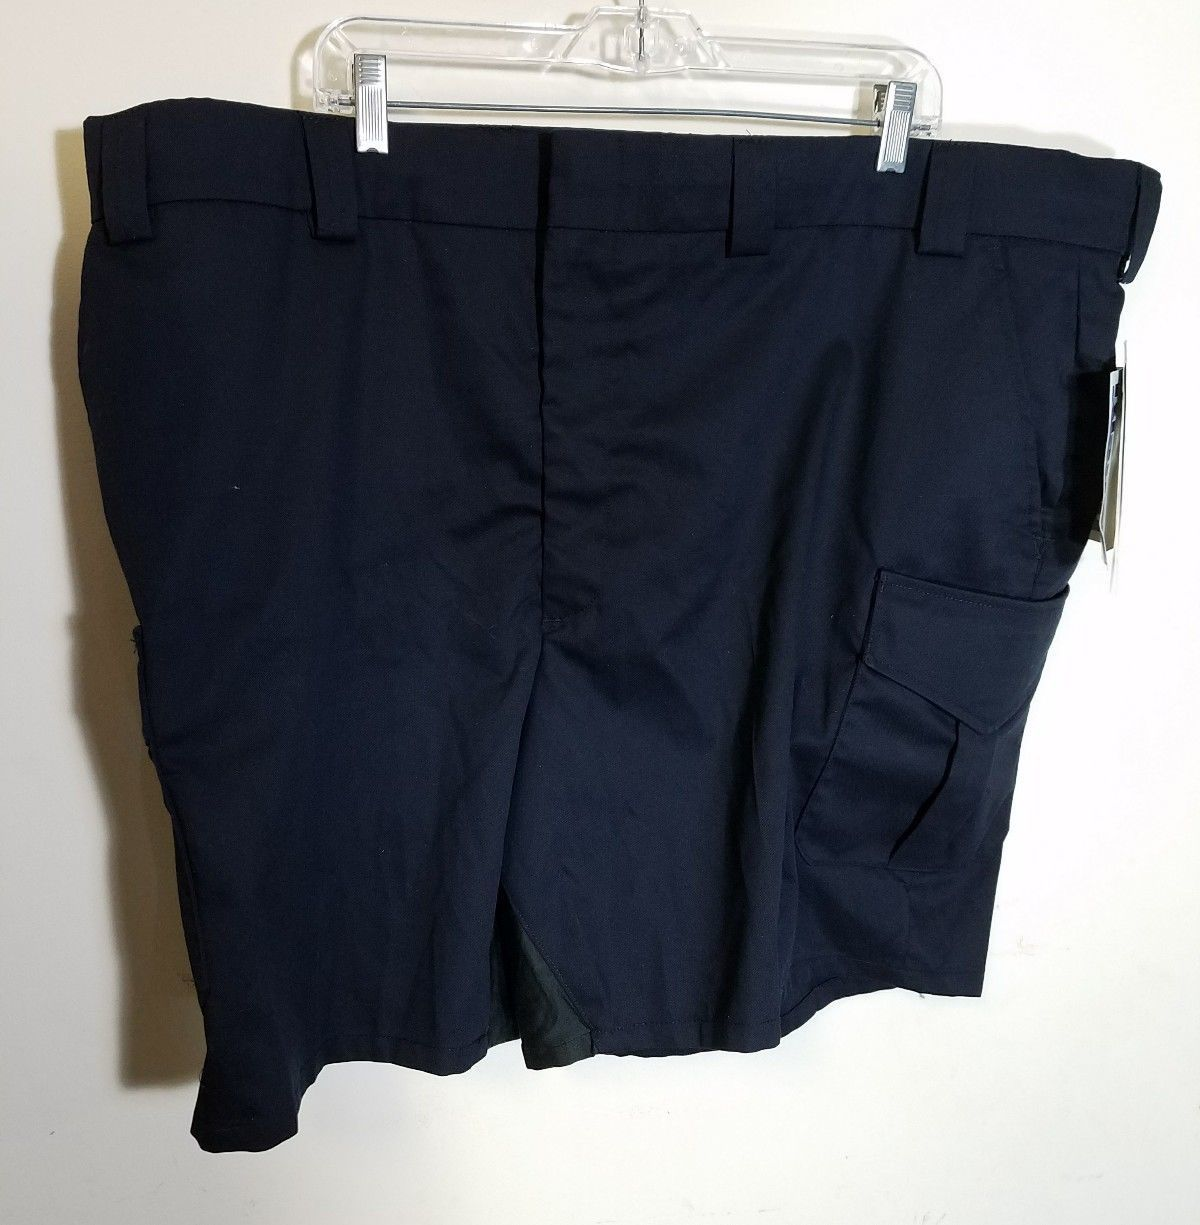 BLAUER STREET GEAR UNISEX SHORTS SIZE 48 NAVY BLUE TWILL COTTON LYCRA STRETCH